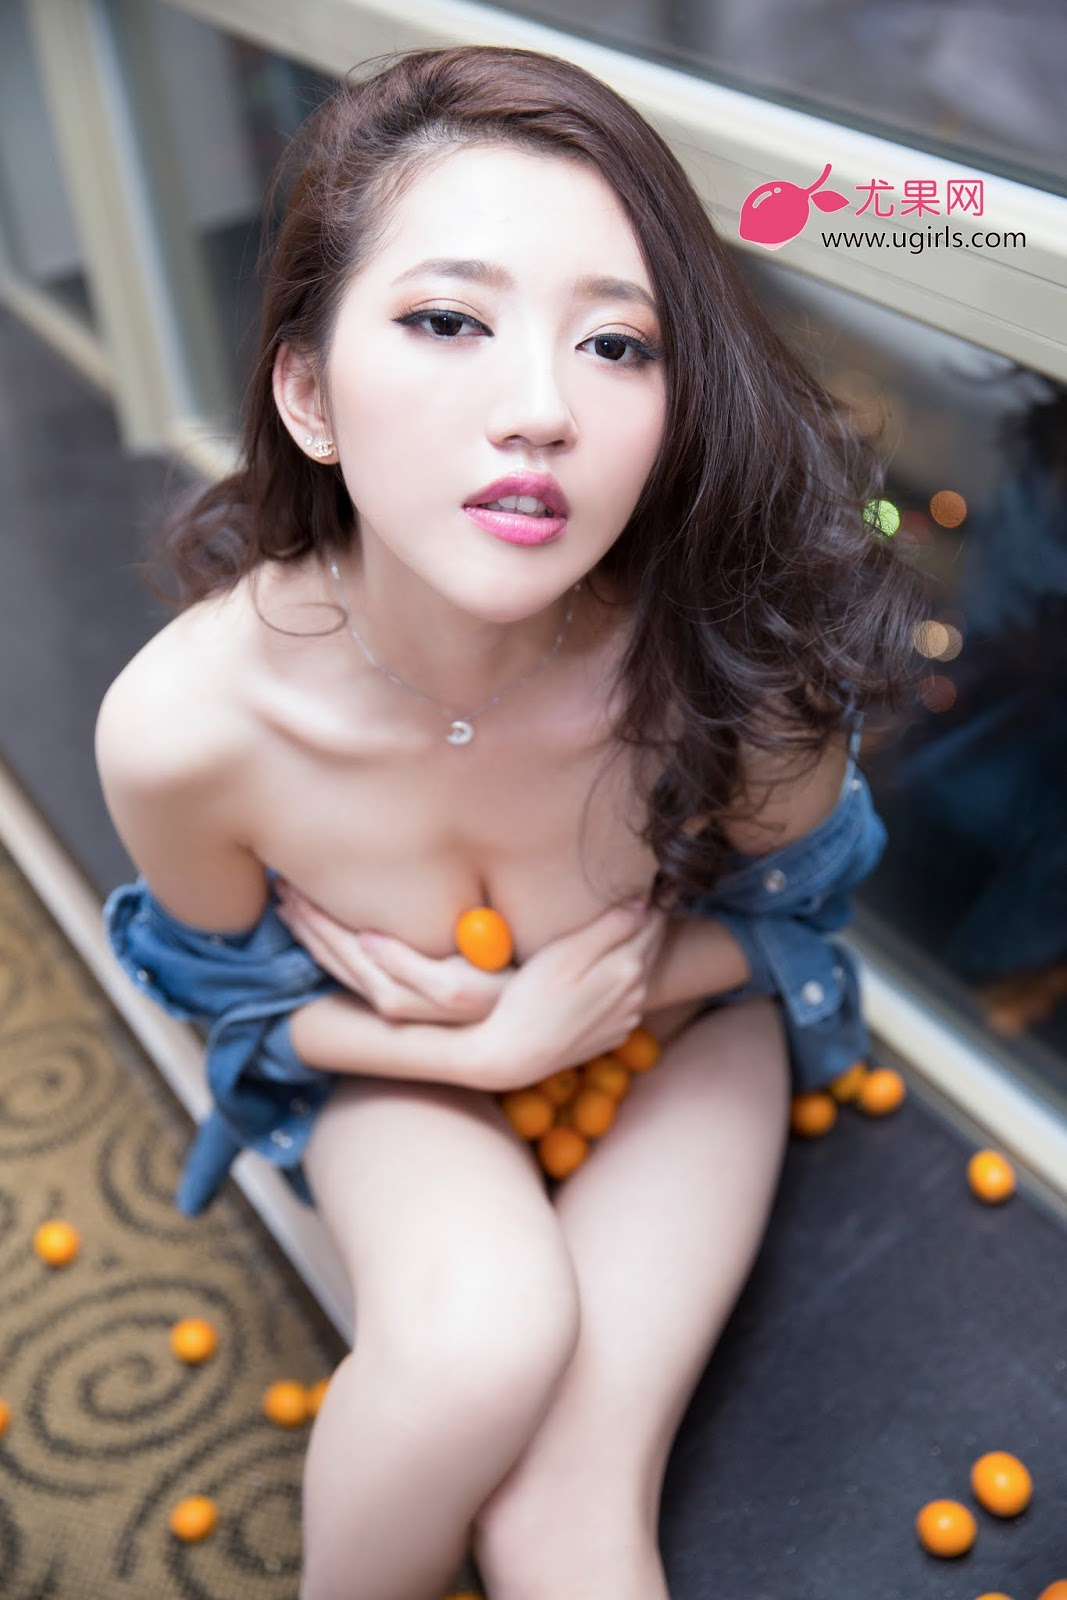 A14A5615 - Hot Model UGIRLS NO.8